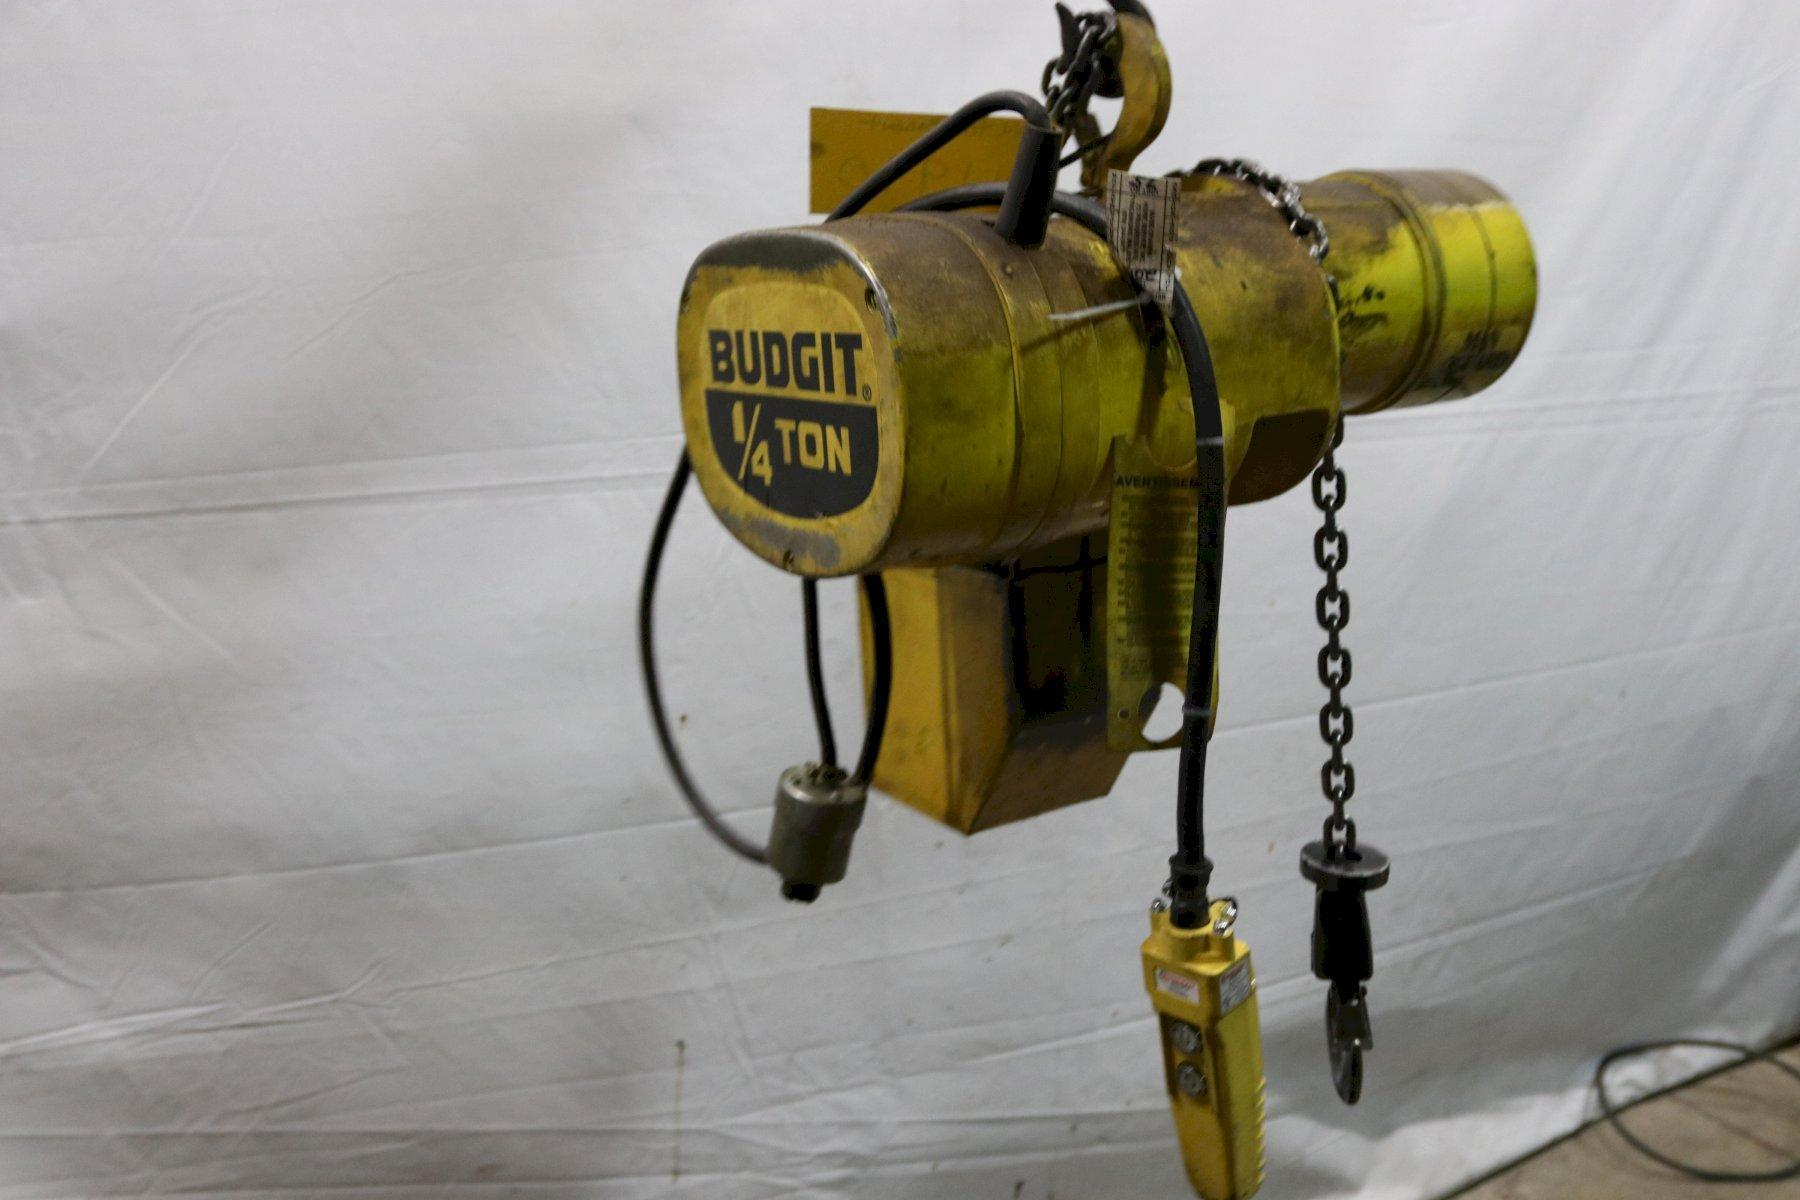 1/4 TON BUDGIT ELECTRIC POWERED CHAIN HOIST : STOCK #11990